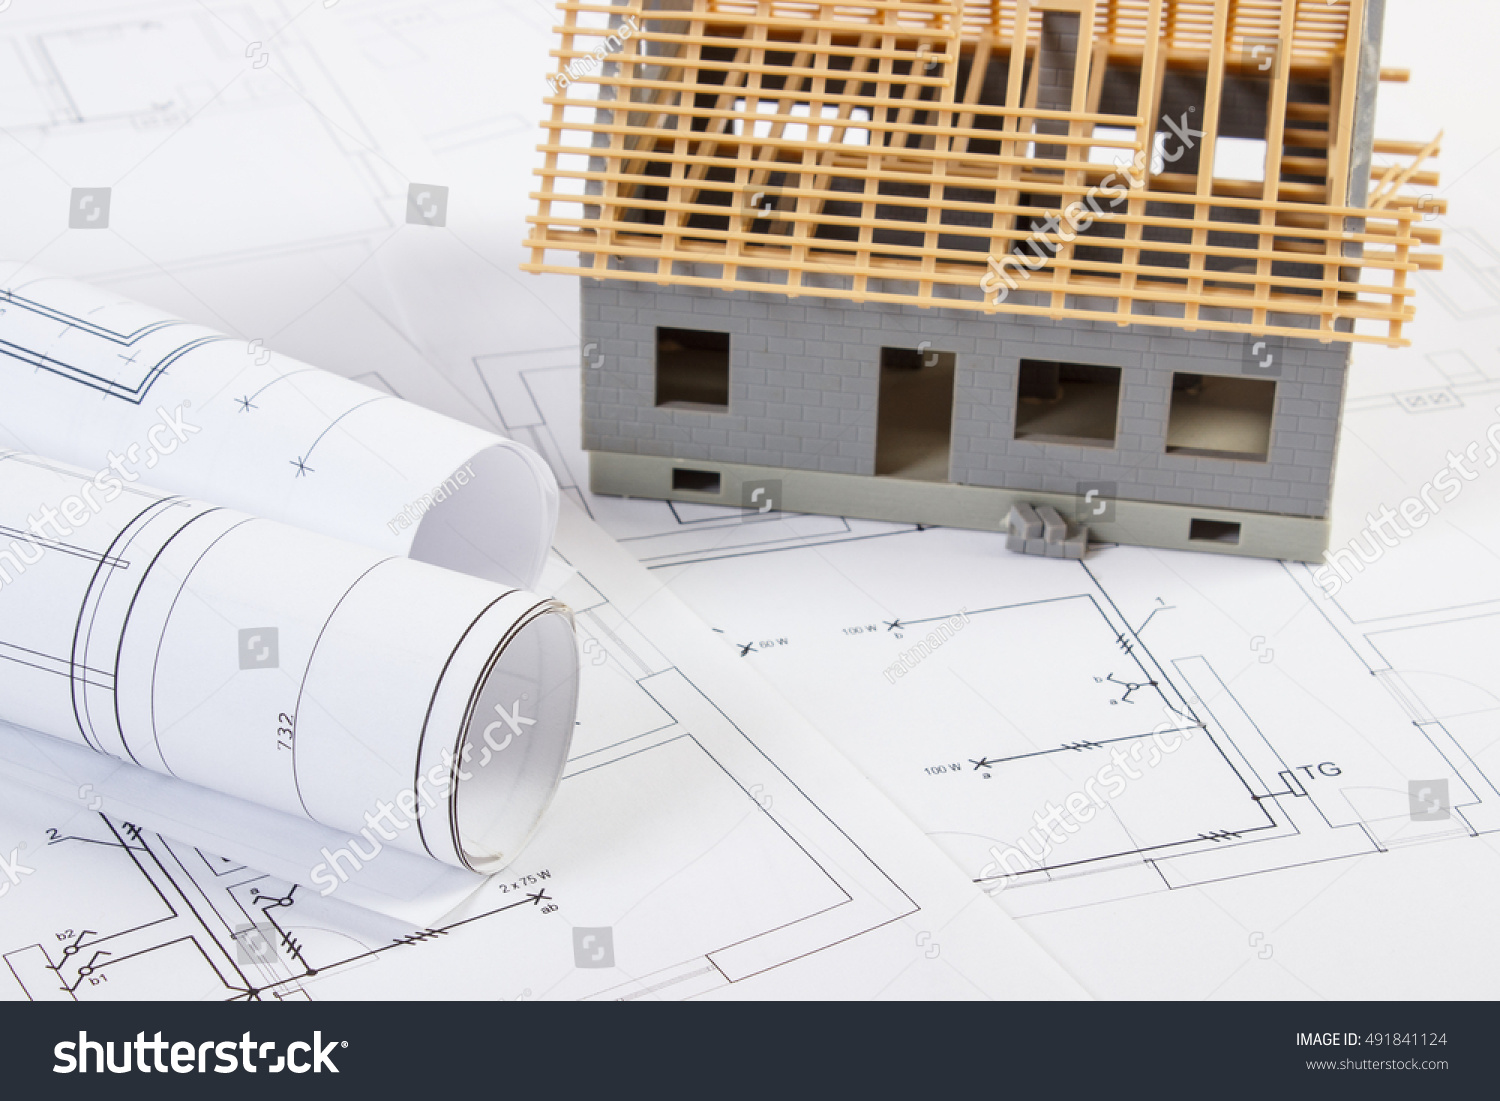 Small House Under Construction Rolls Diagrams Stock Photo (Edit Now ...